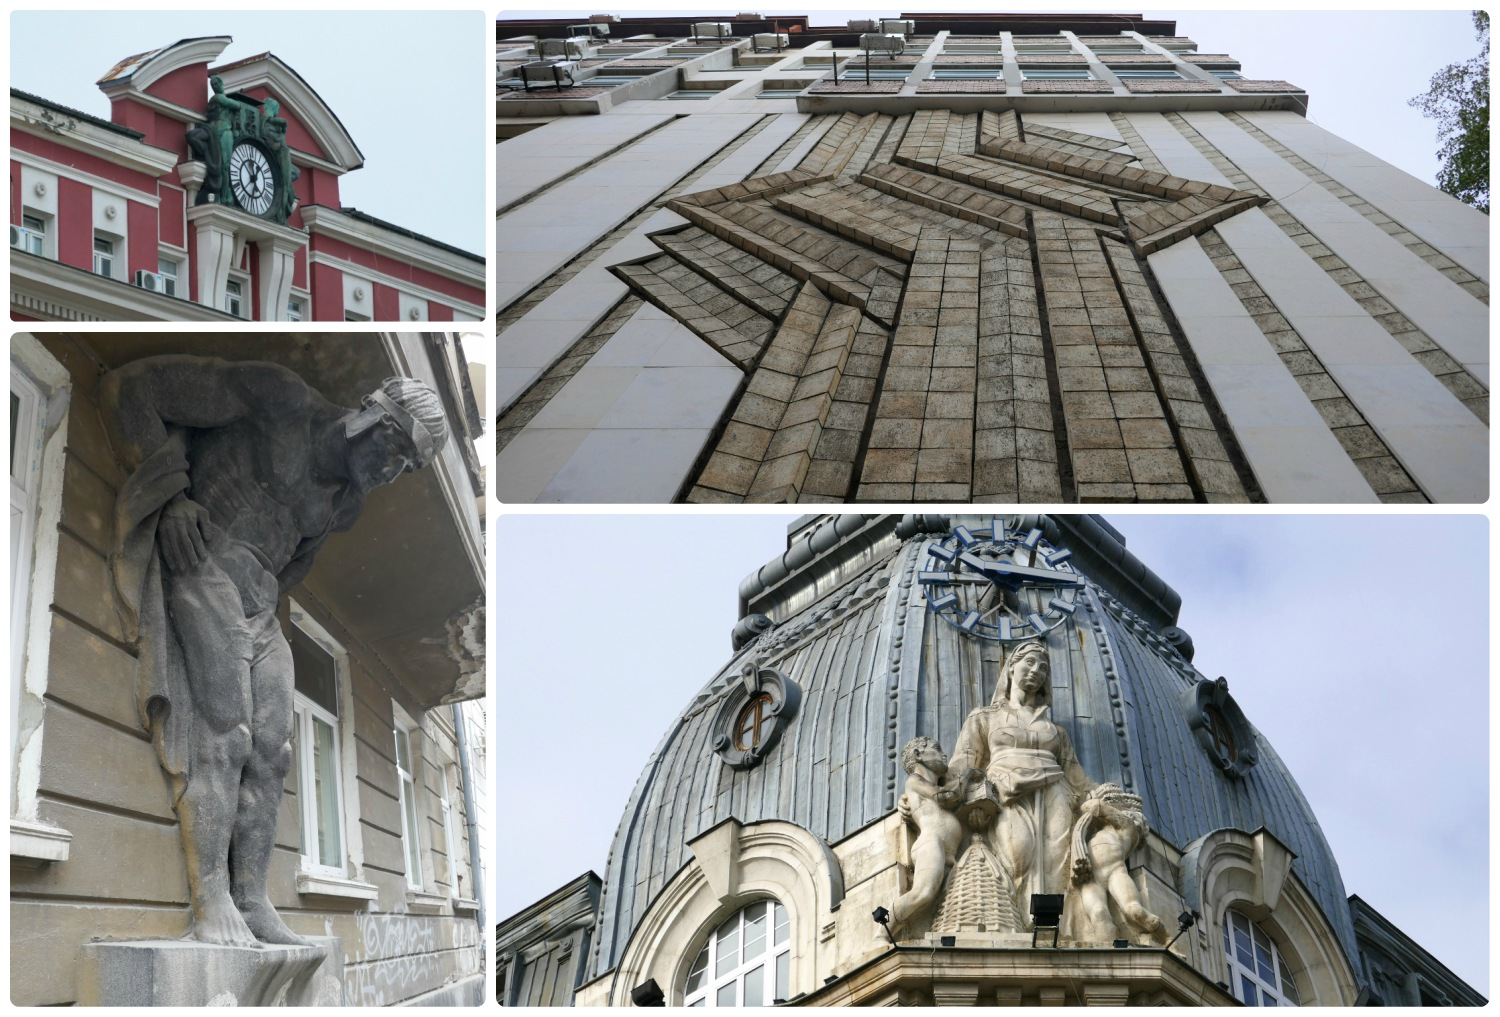 The details on some of the buildings in Sofia, Bulgaria are beautiful and a highlight of the city!